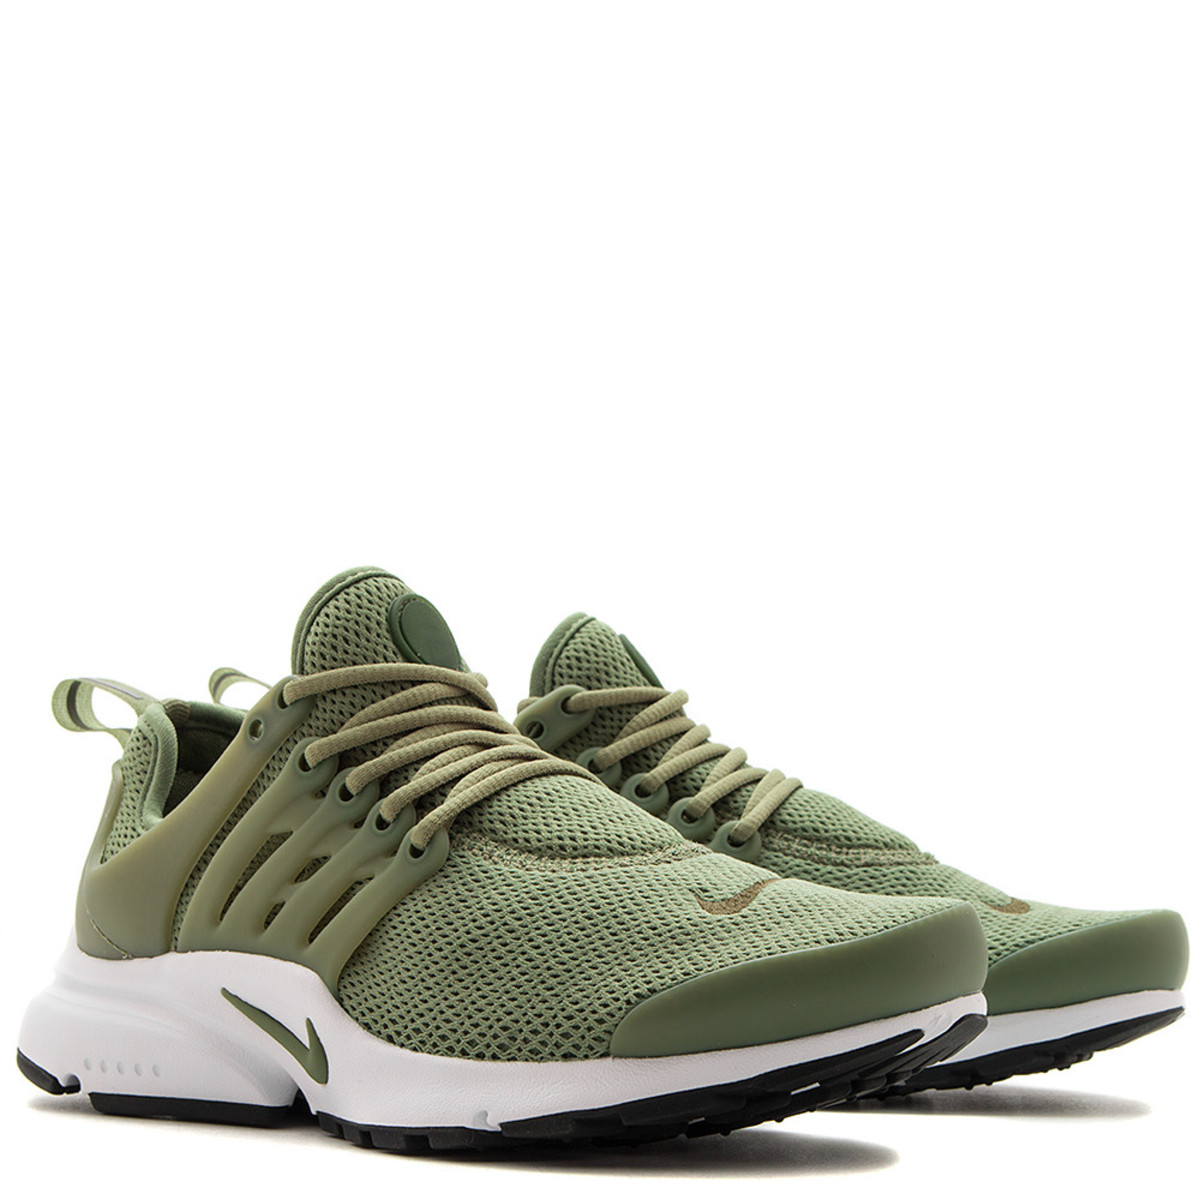 a364d65b7481 ... NIKE WOMEN S AIR PRESTO PALM GREEN Garmentory ...